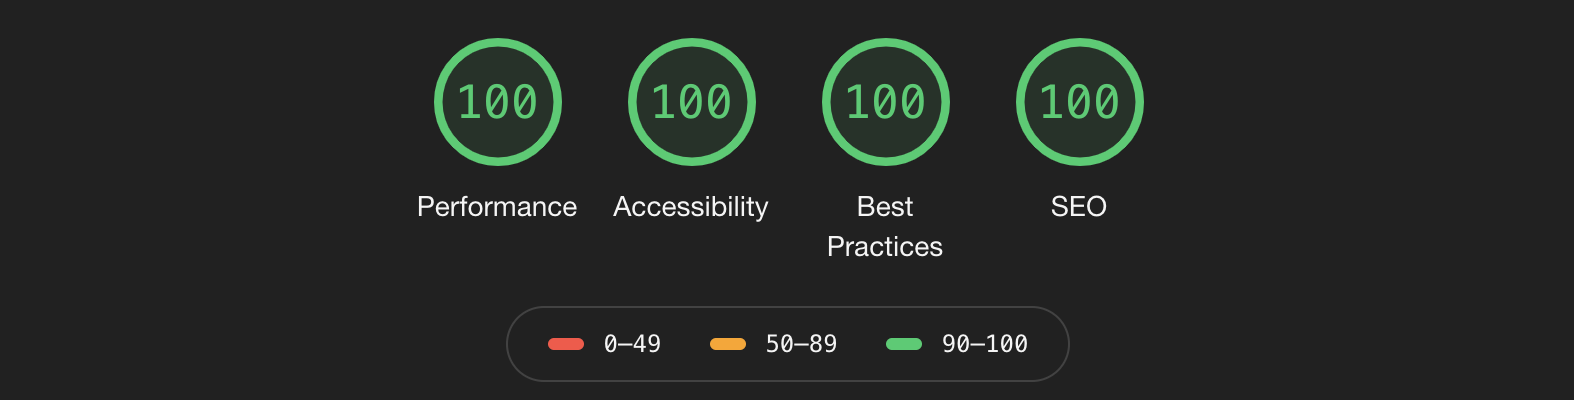 Perfect score using Chrome's Lighthouse audit tool